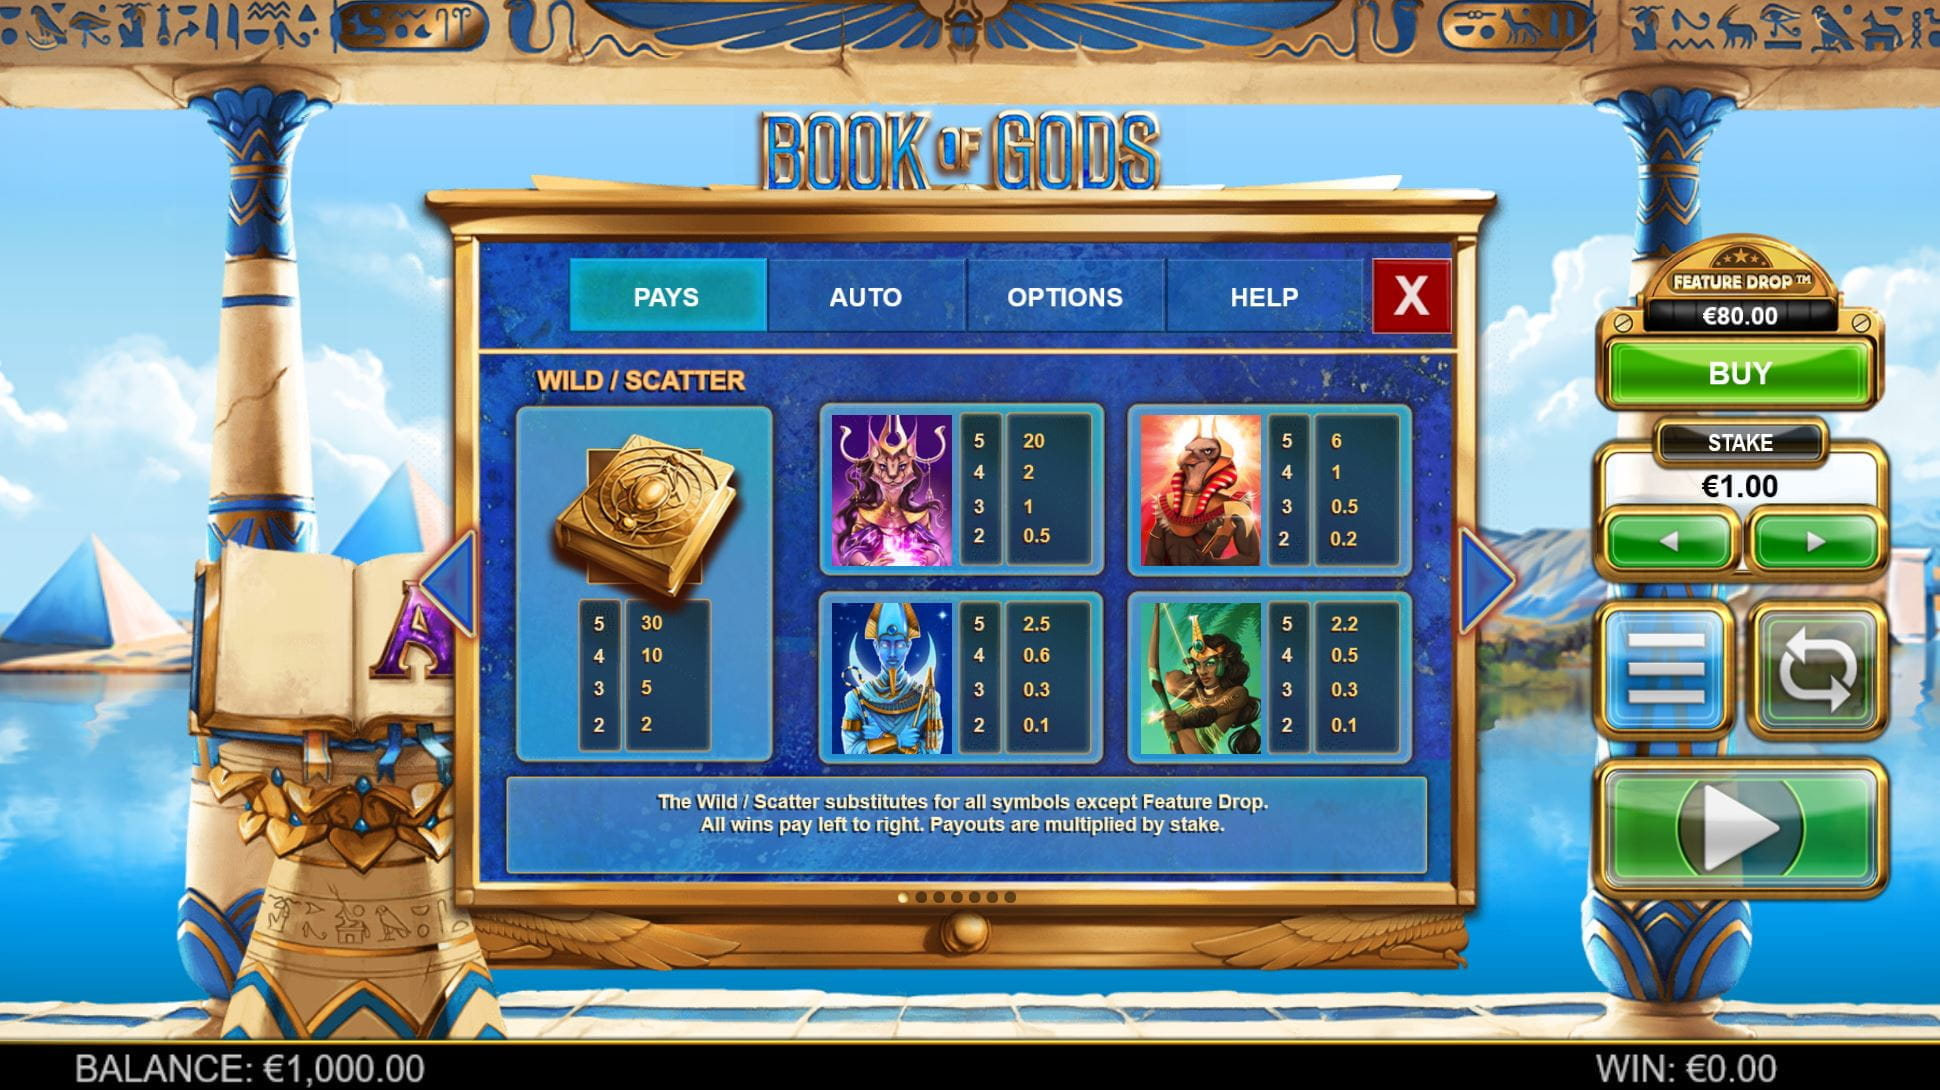 Book of Gods Online Paytable